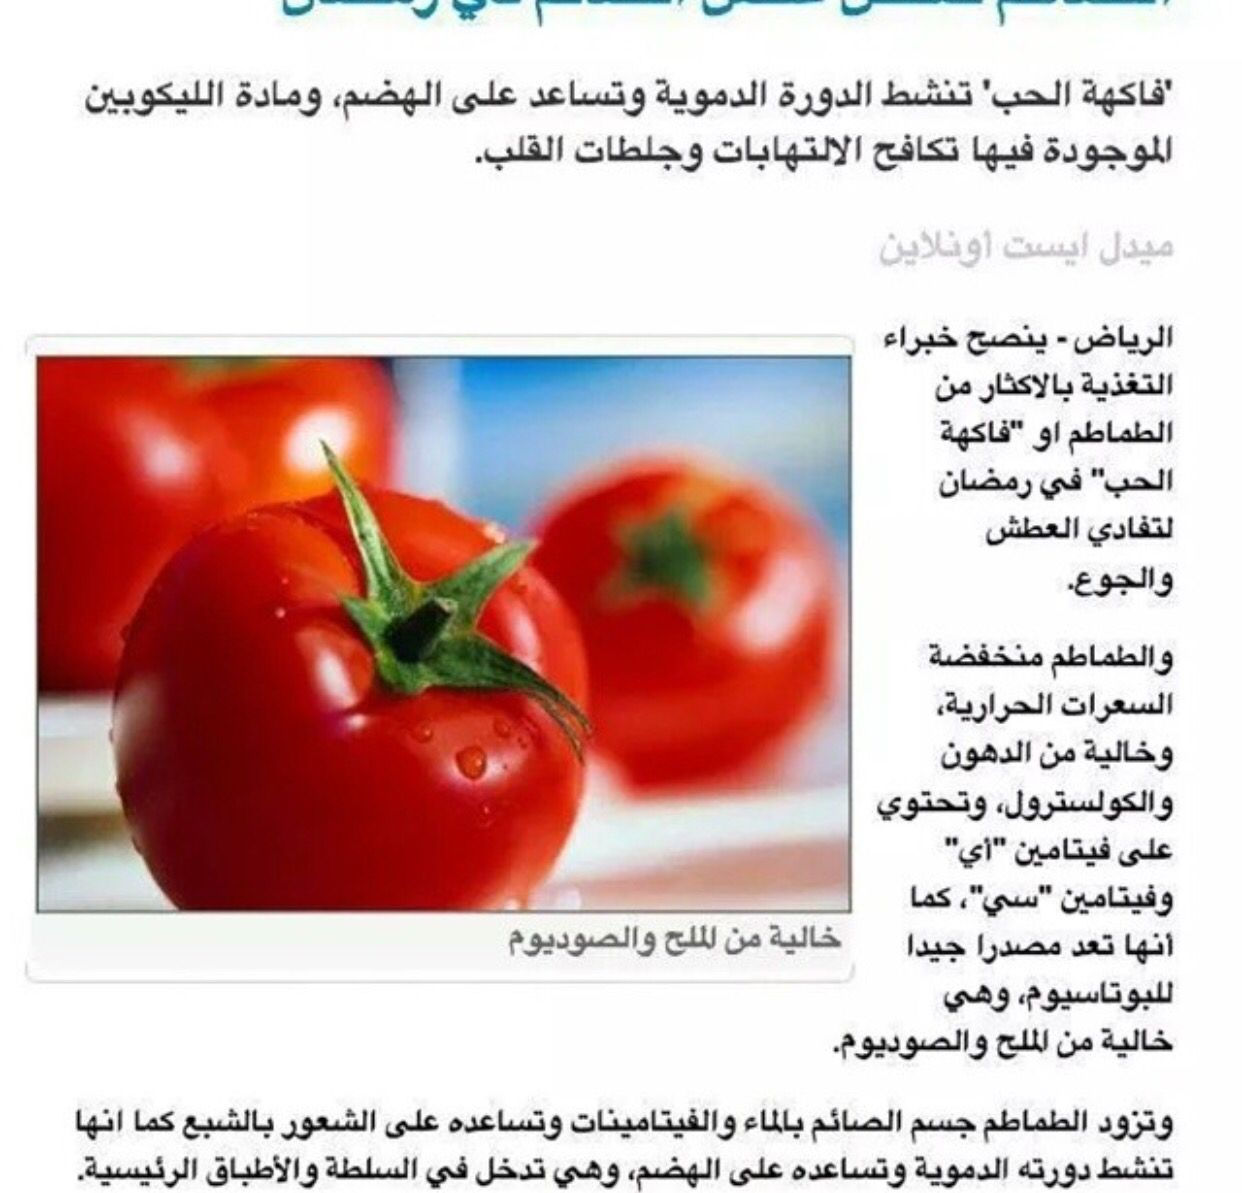 Pin By Nuhad On Health In 2020 Vegetables Tomato Health